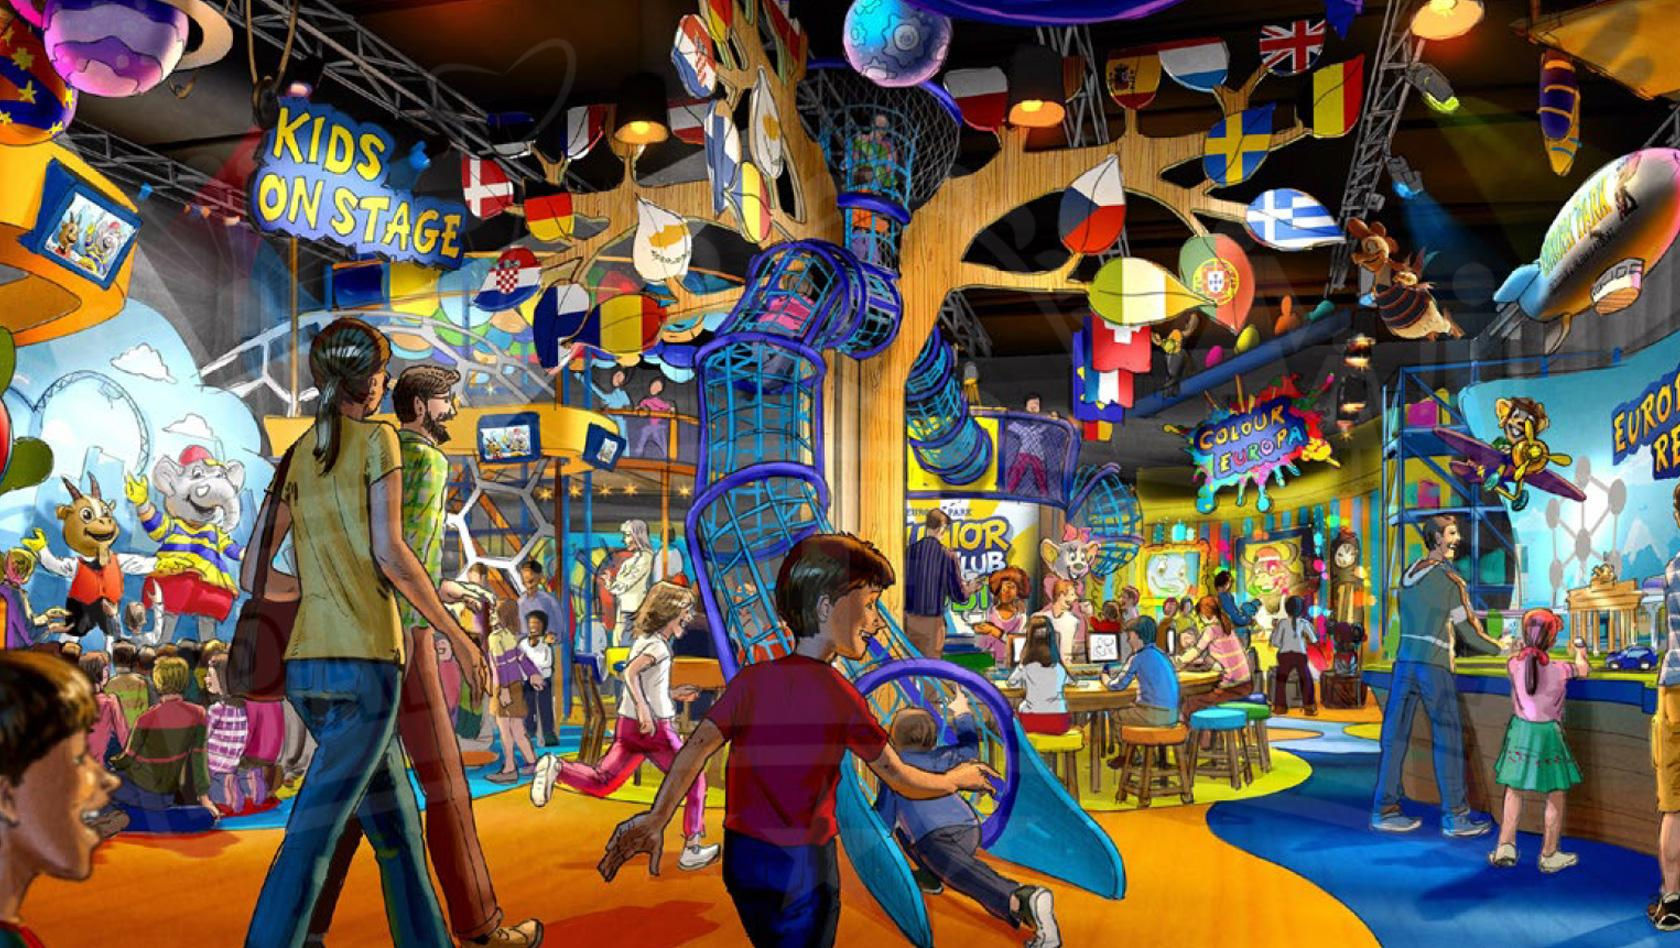 europa park junior club studio 2019 neu konzept